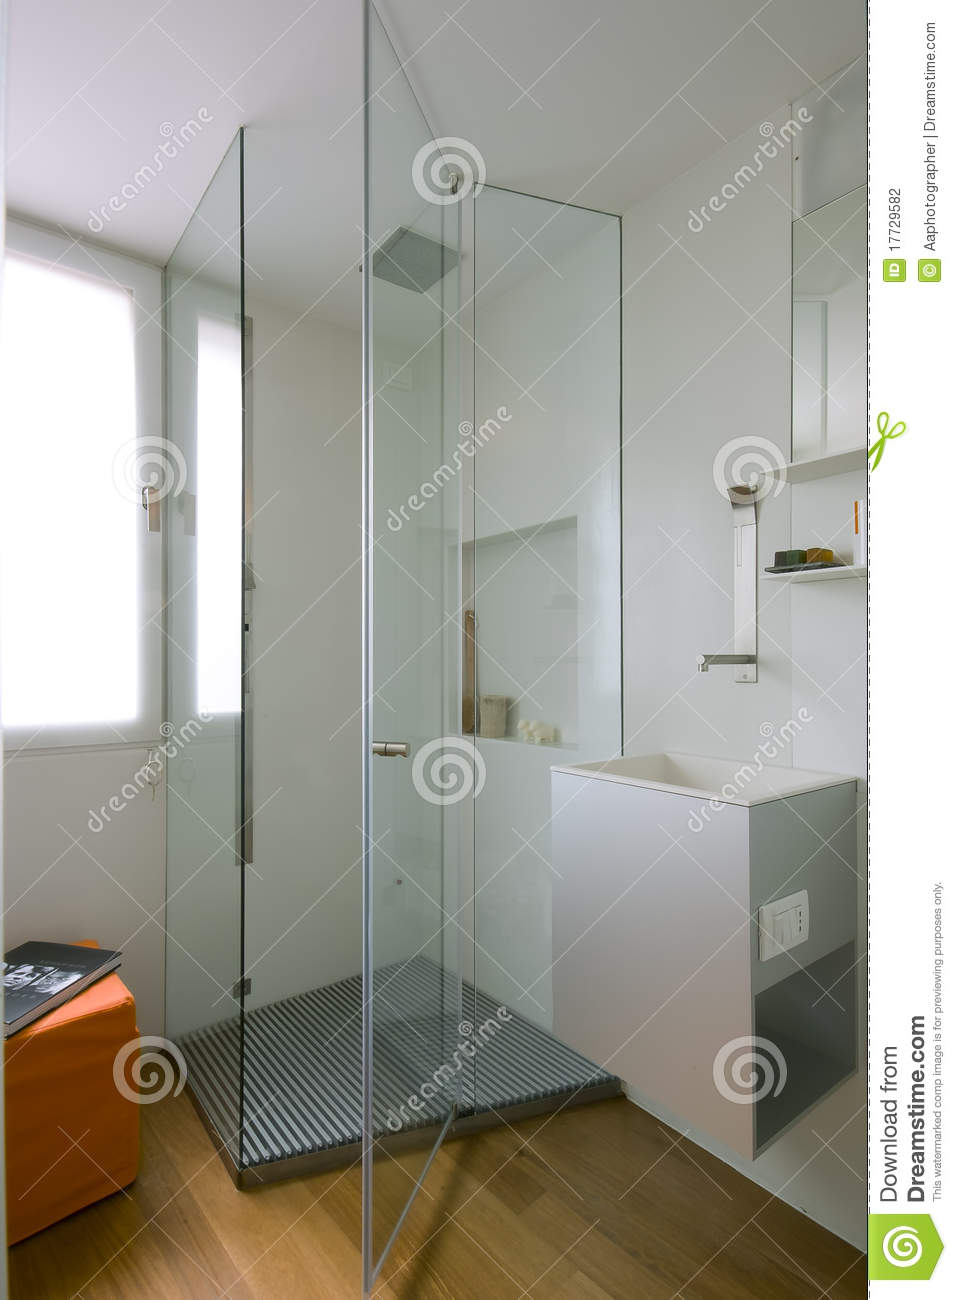 Shower Cubicle With Glass Partition Stock Photo  Image